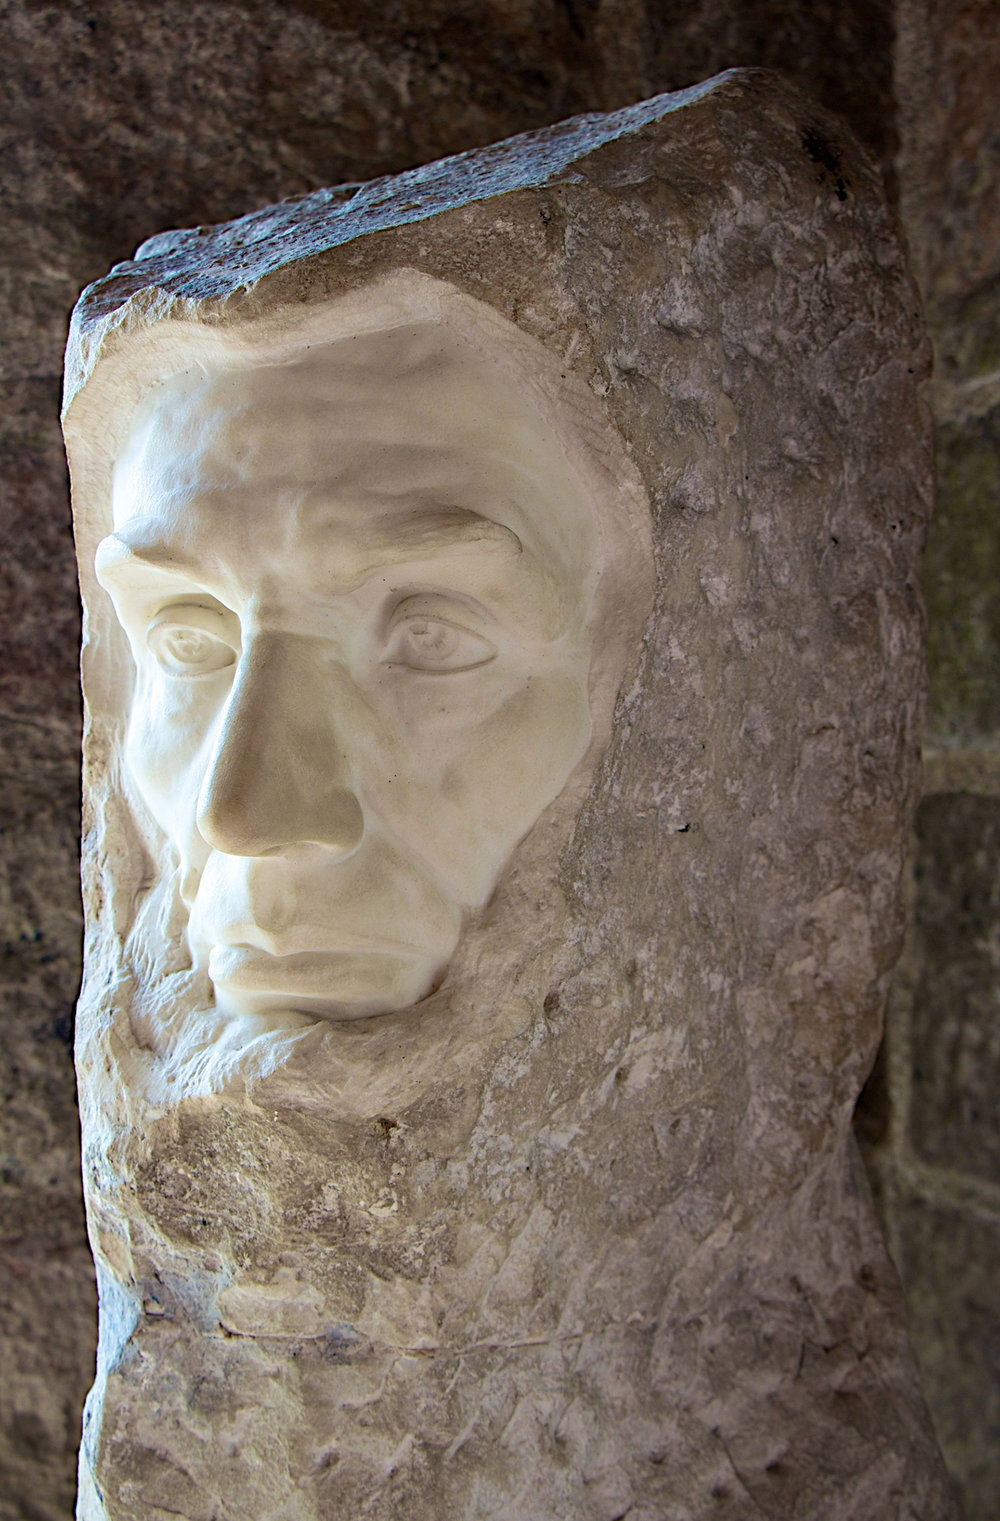 Figure 1: This marble bust of Abraham Lincoln was sculpted in 1923 by George Grey Barnard. It was purchased by Raymond Pitcairn in 1929, and is now on exhibit in Glencairn Museum.